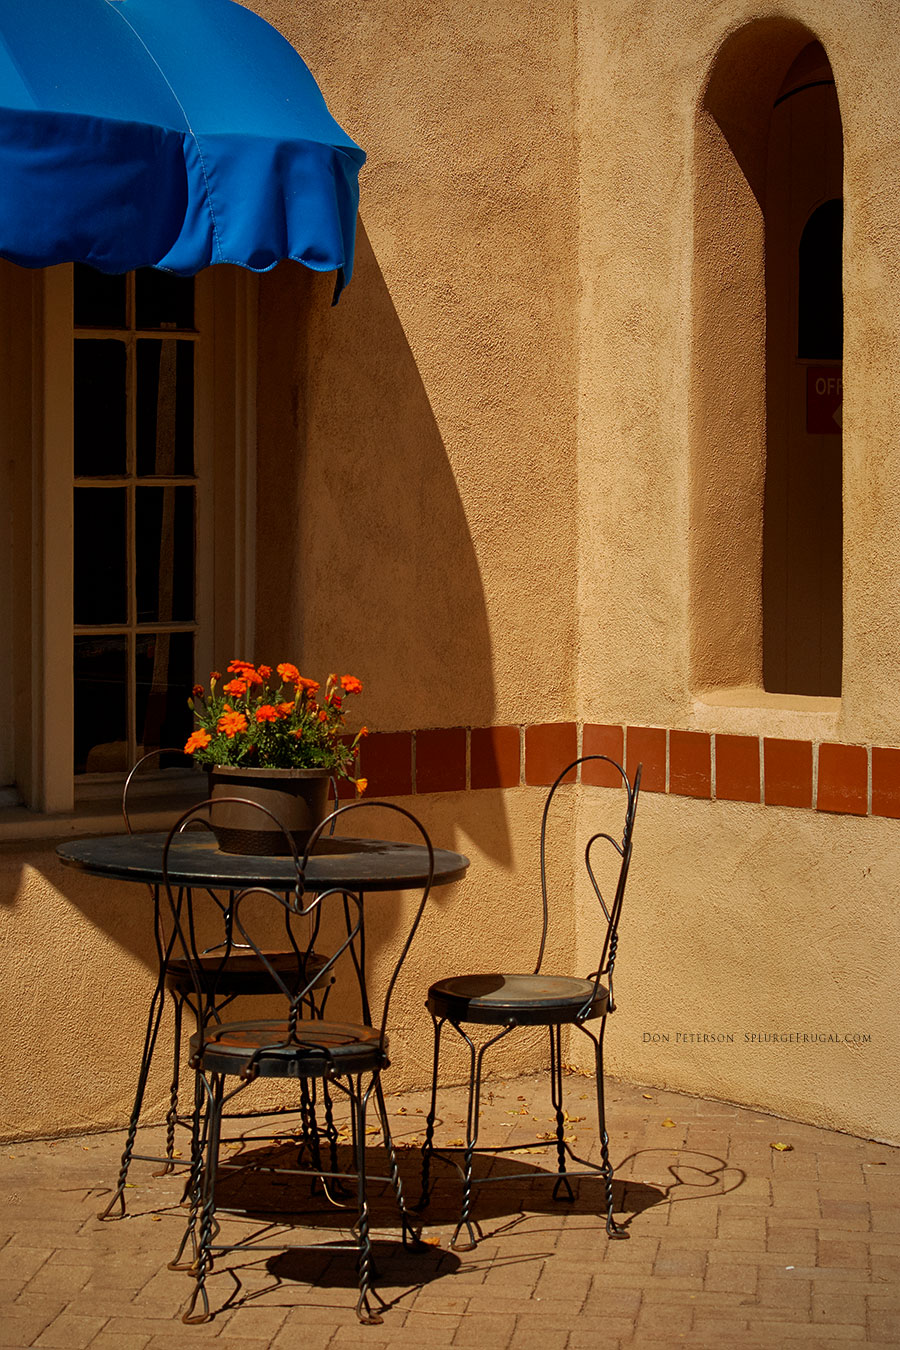 Welcome to Santa Fe! Your Table Is Waiting!